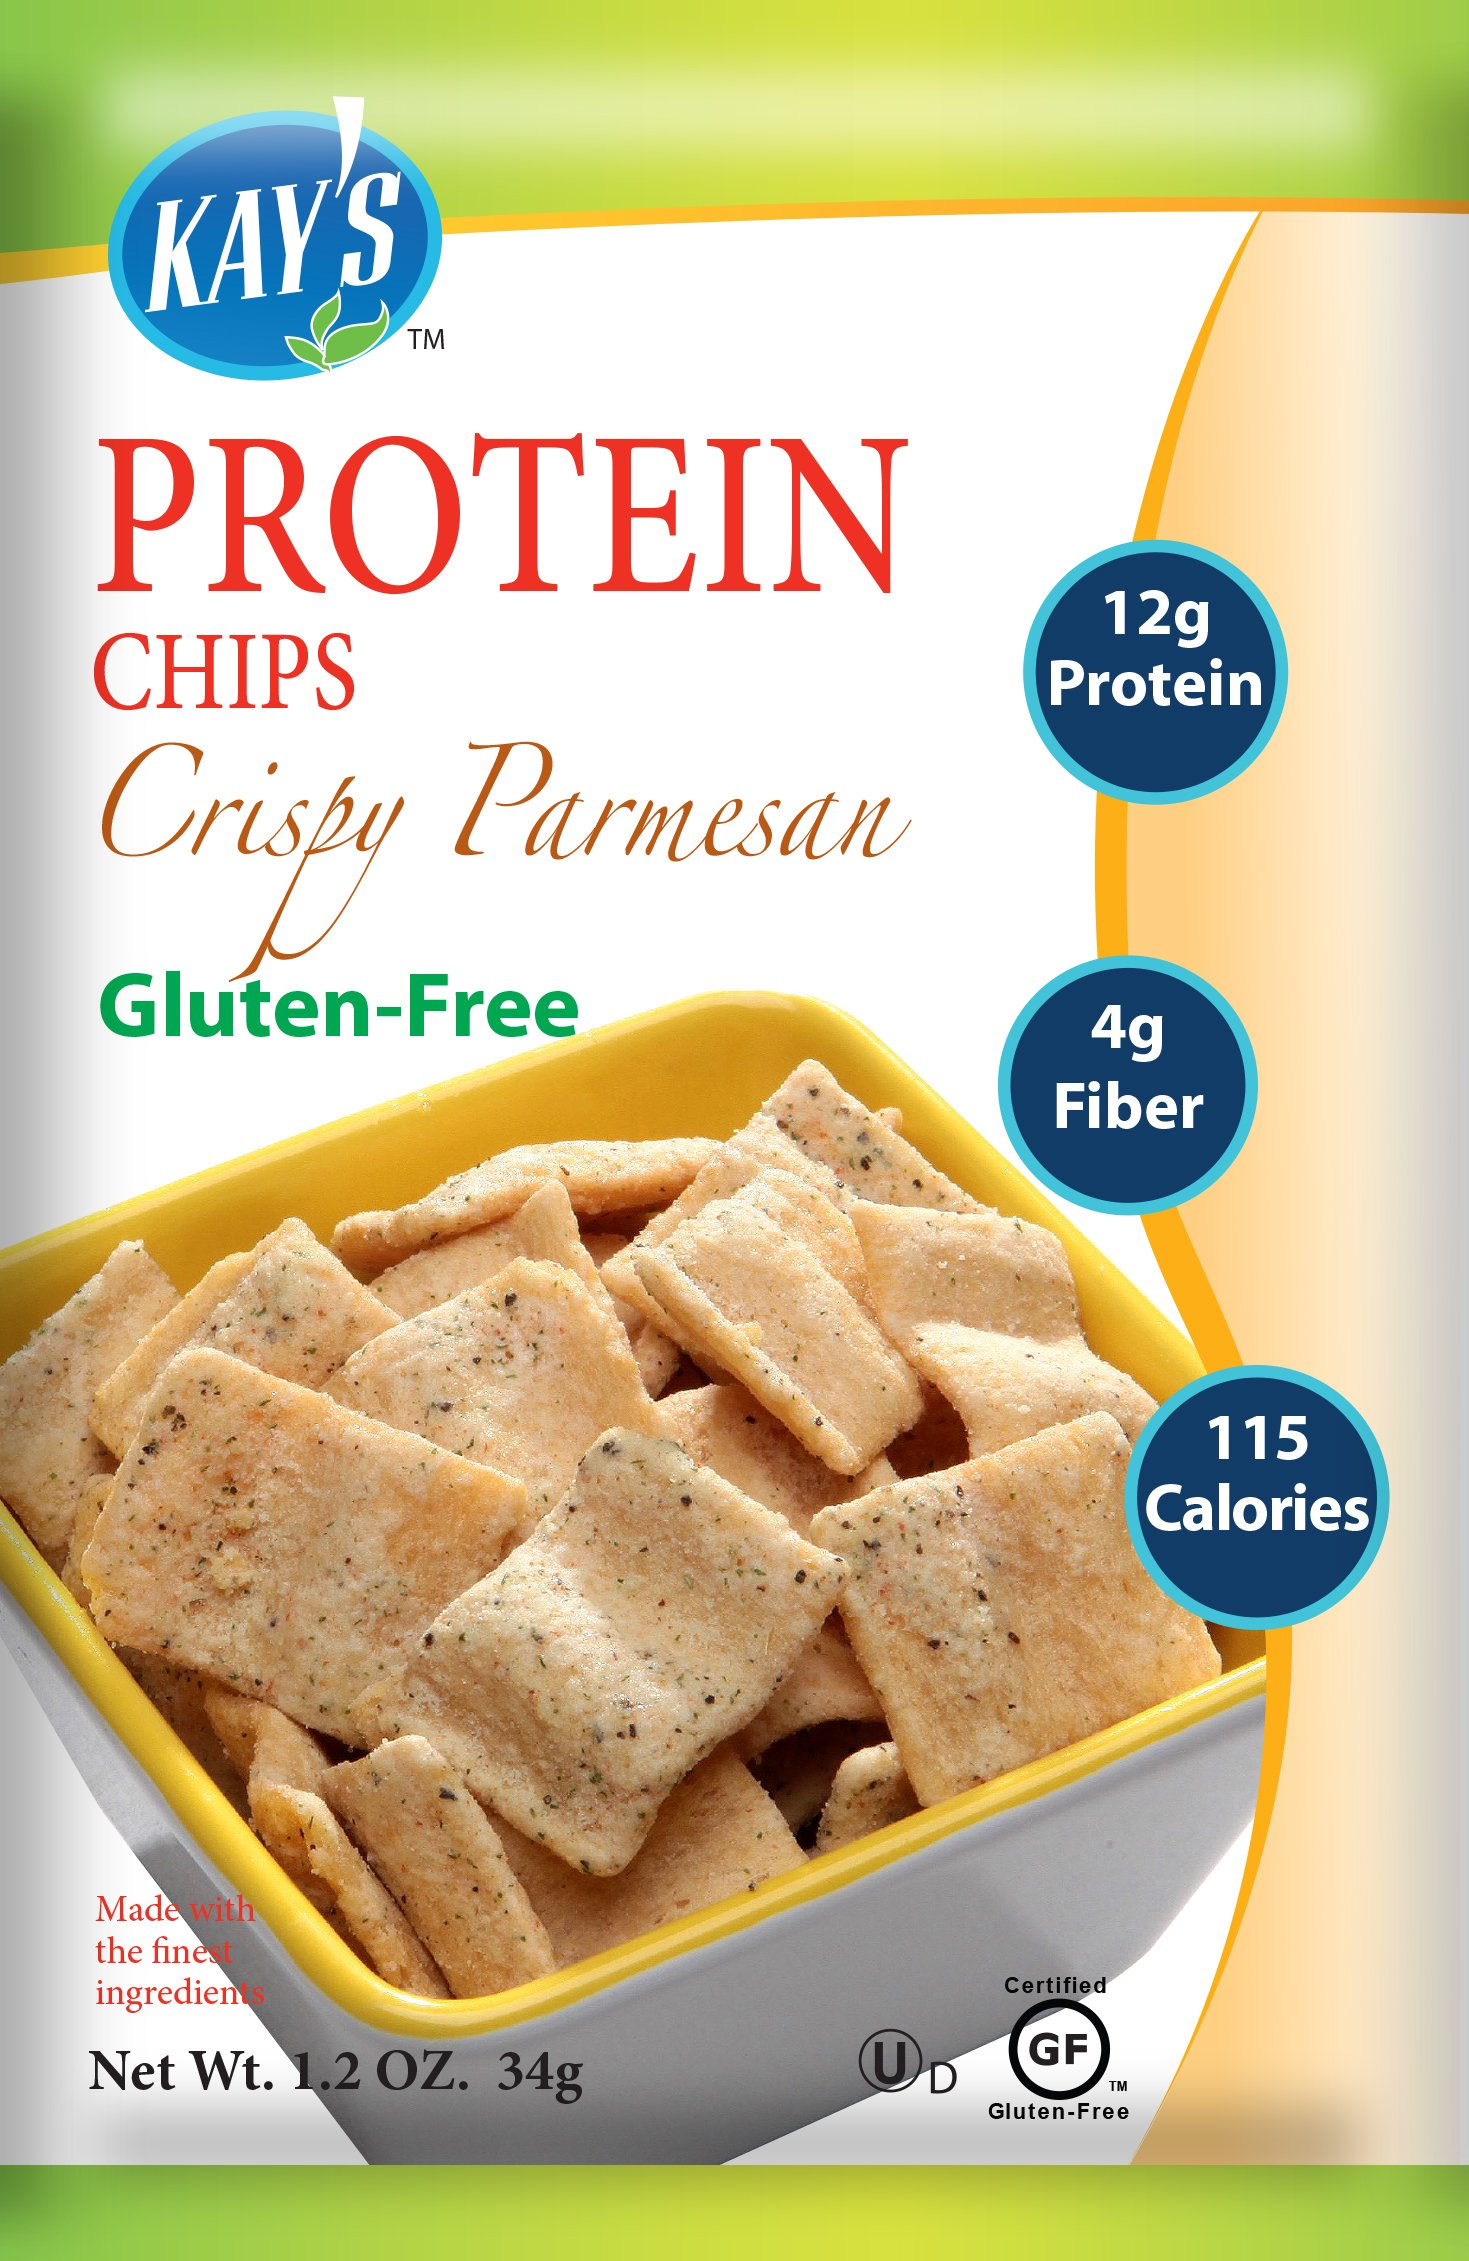 Kay's Naturals Protein Chips, Crispy Parmesan, Gluten-Free, 1.2 Ounce (Pack of 6)